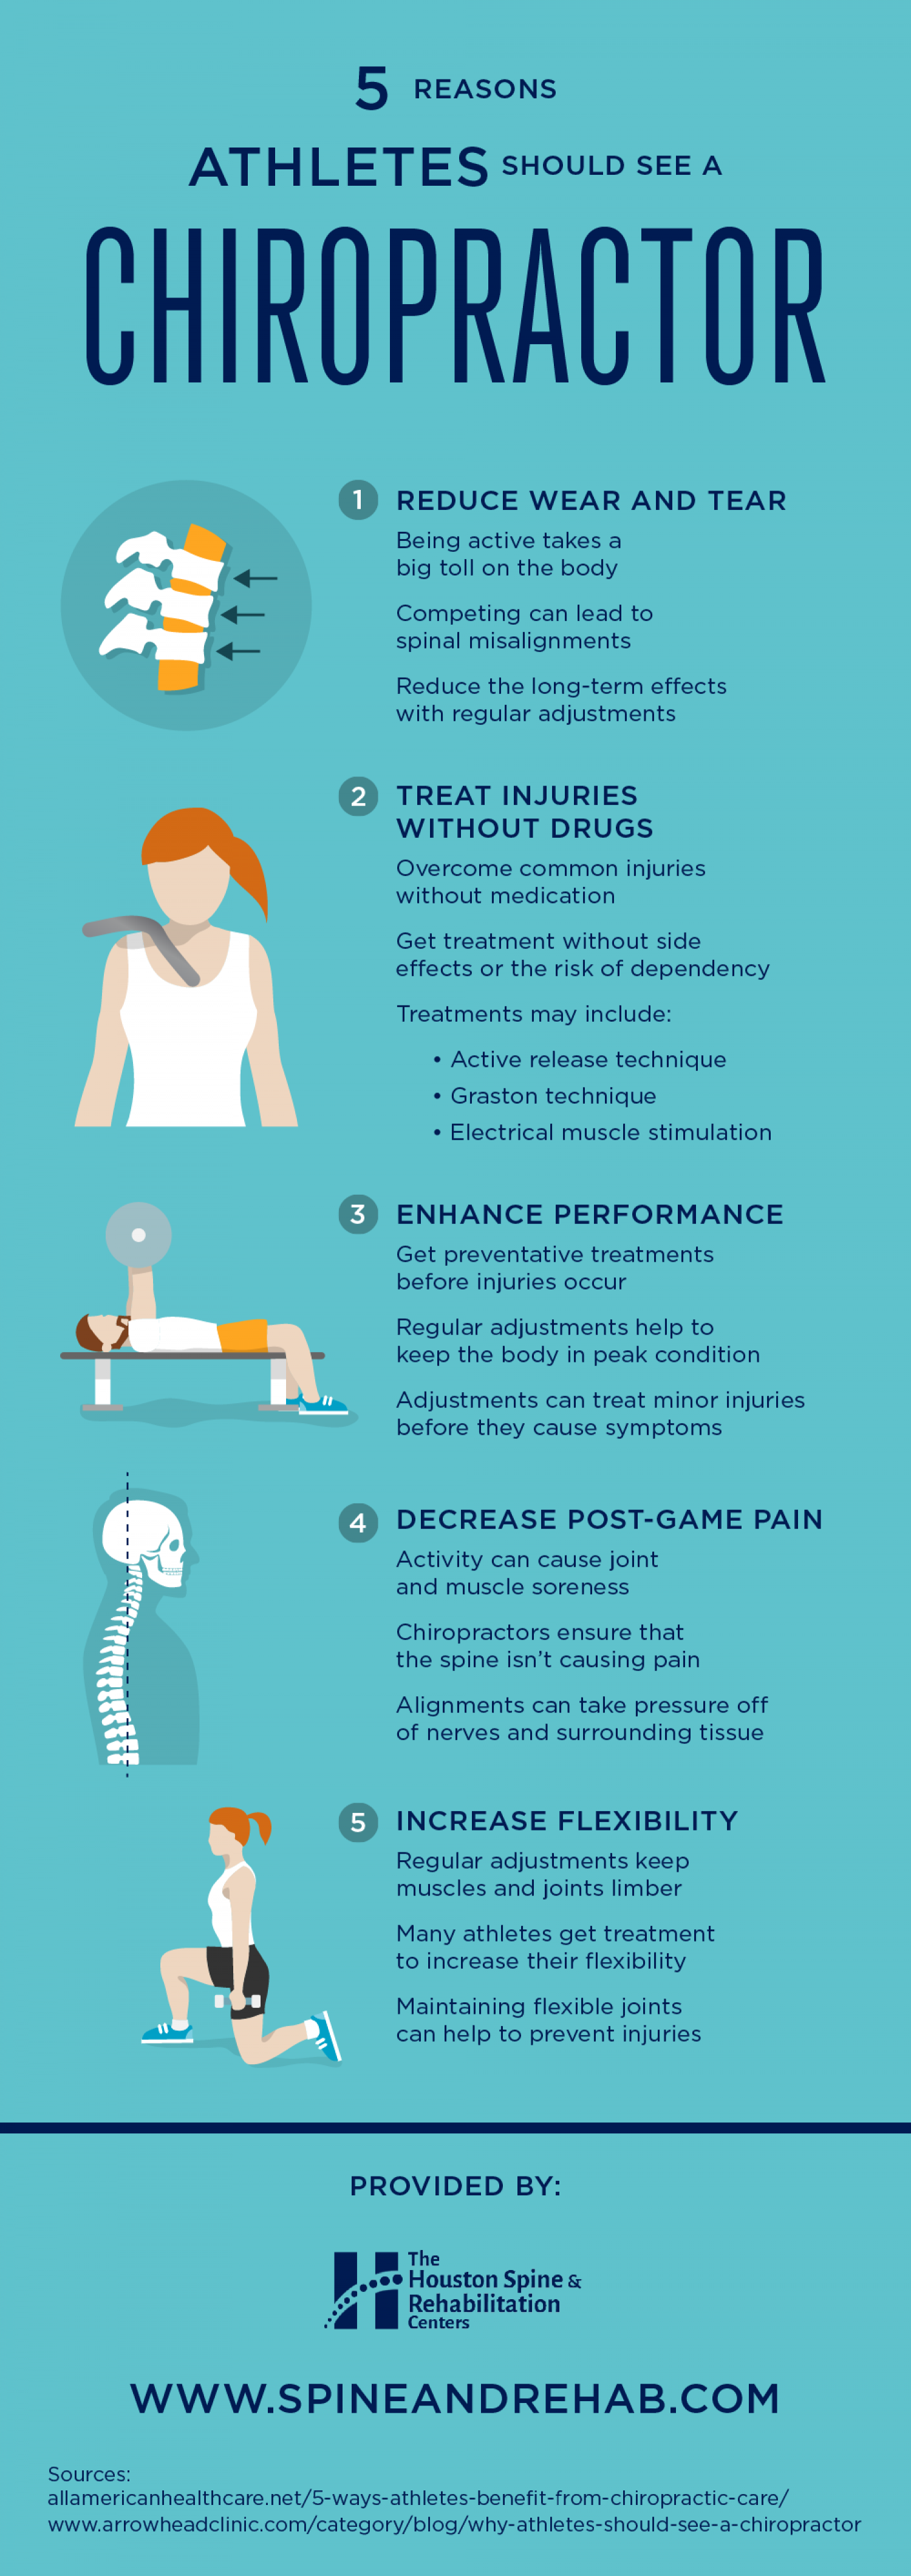 5 Reasons Athletes Should See a Chiropractor Infographic